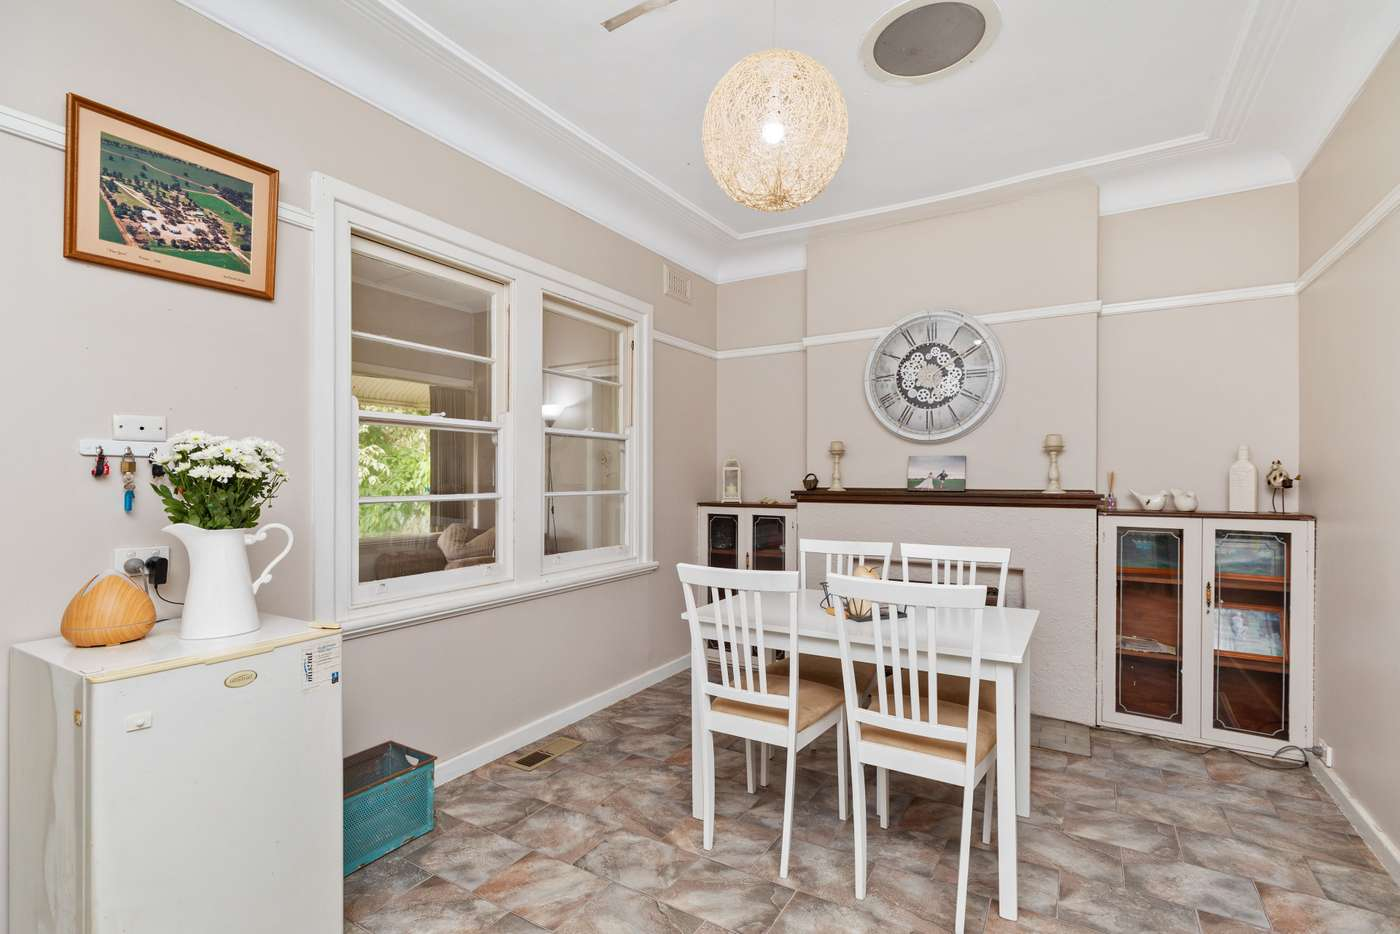 Sixth view of Homely house listing, 47 Gormly Avenue, Wagga Wagga NSW 2650